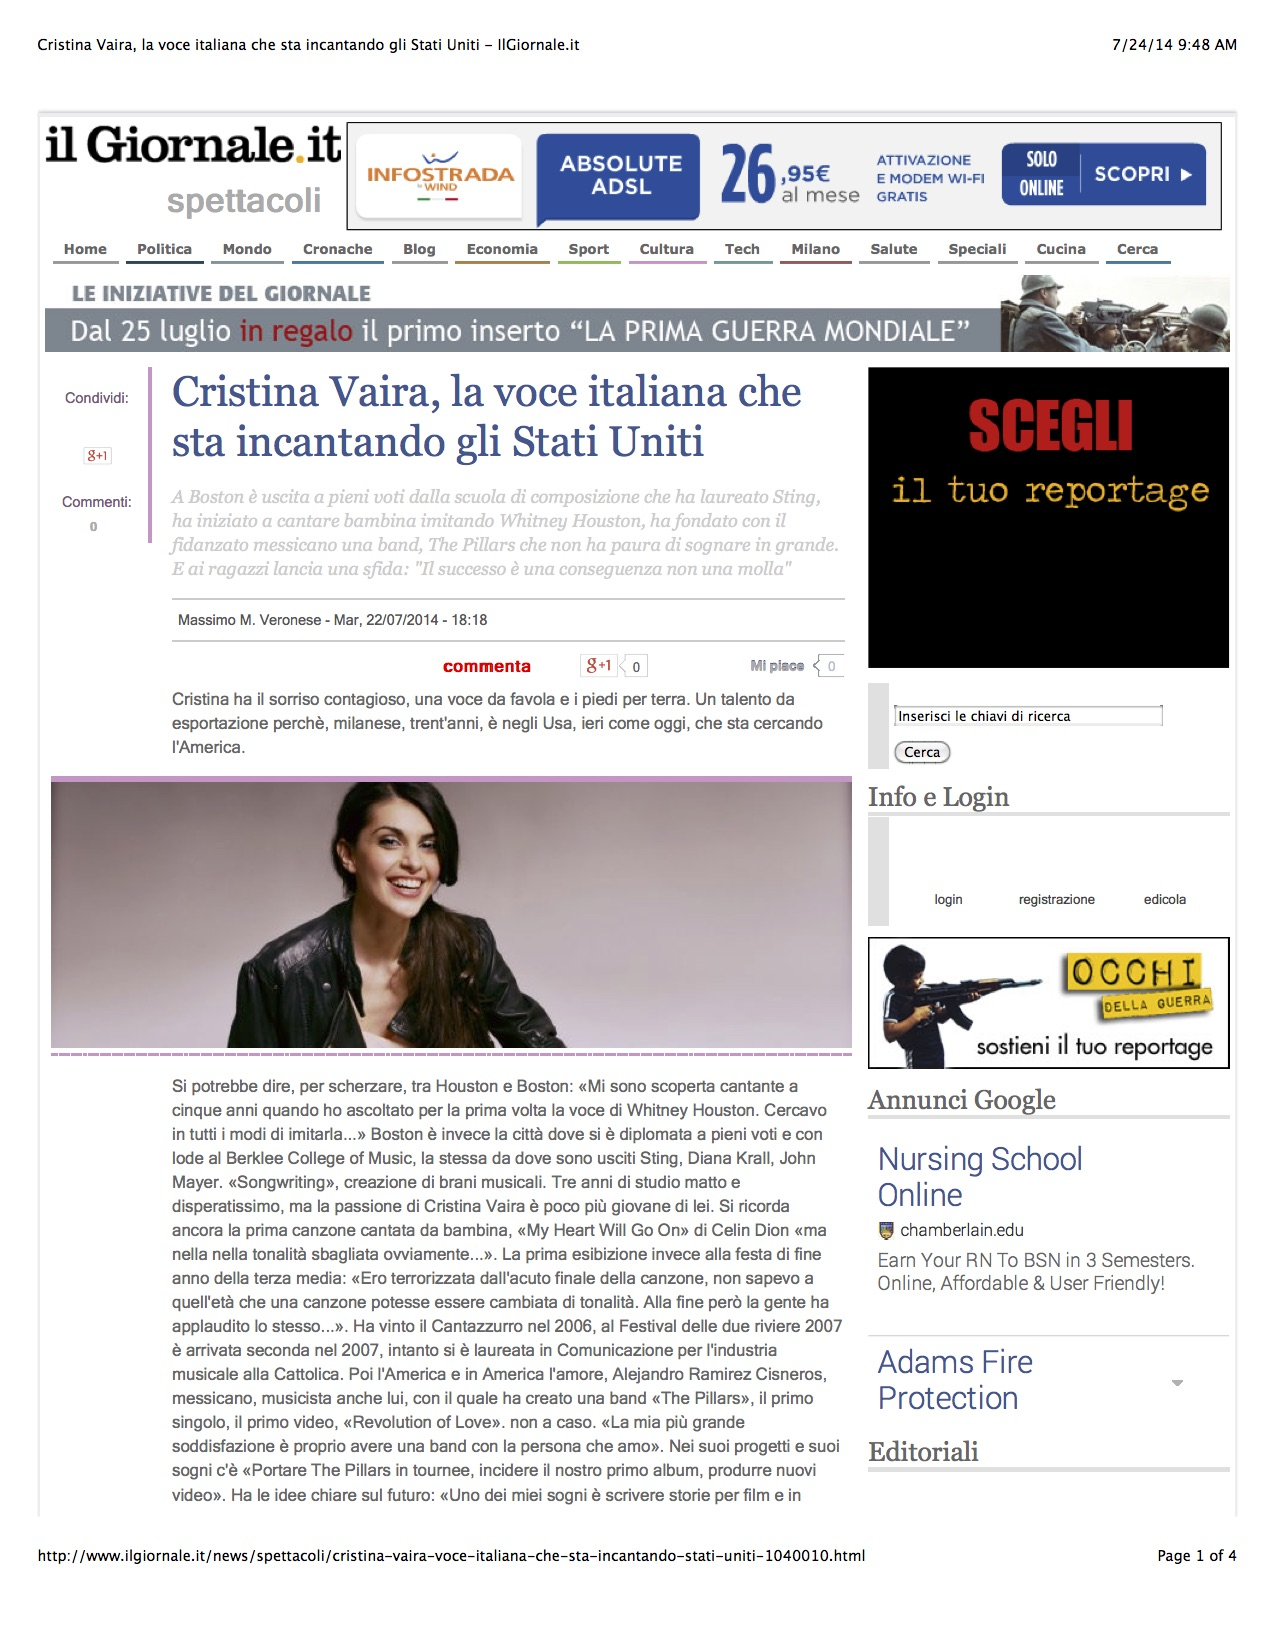 Cristina Vaira Press Release ©2017 All Rights Reserved. Cristina Vaira la voce italiana che sta incantando gli Stati Uniti. Il Giornale 7/24/2014